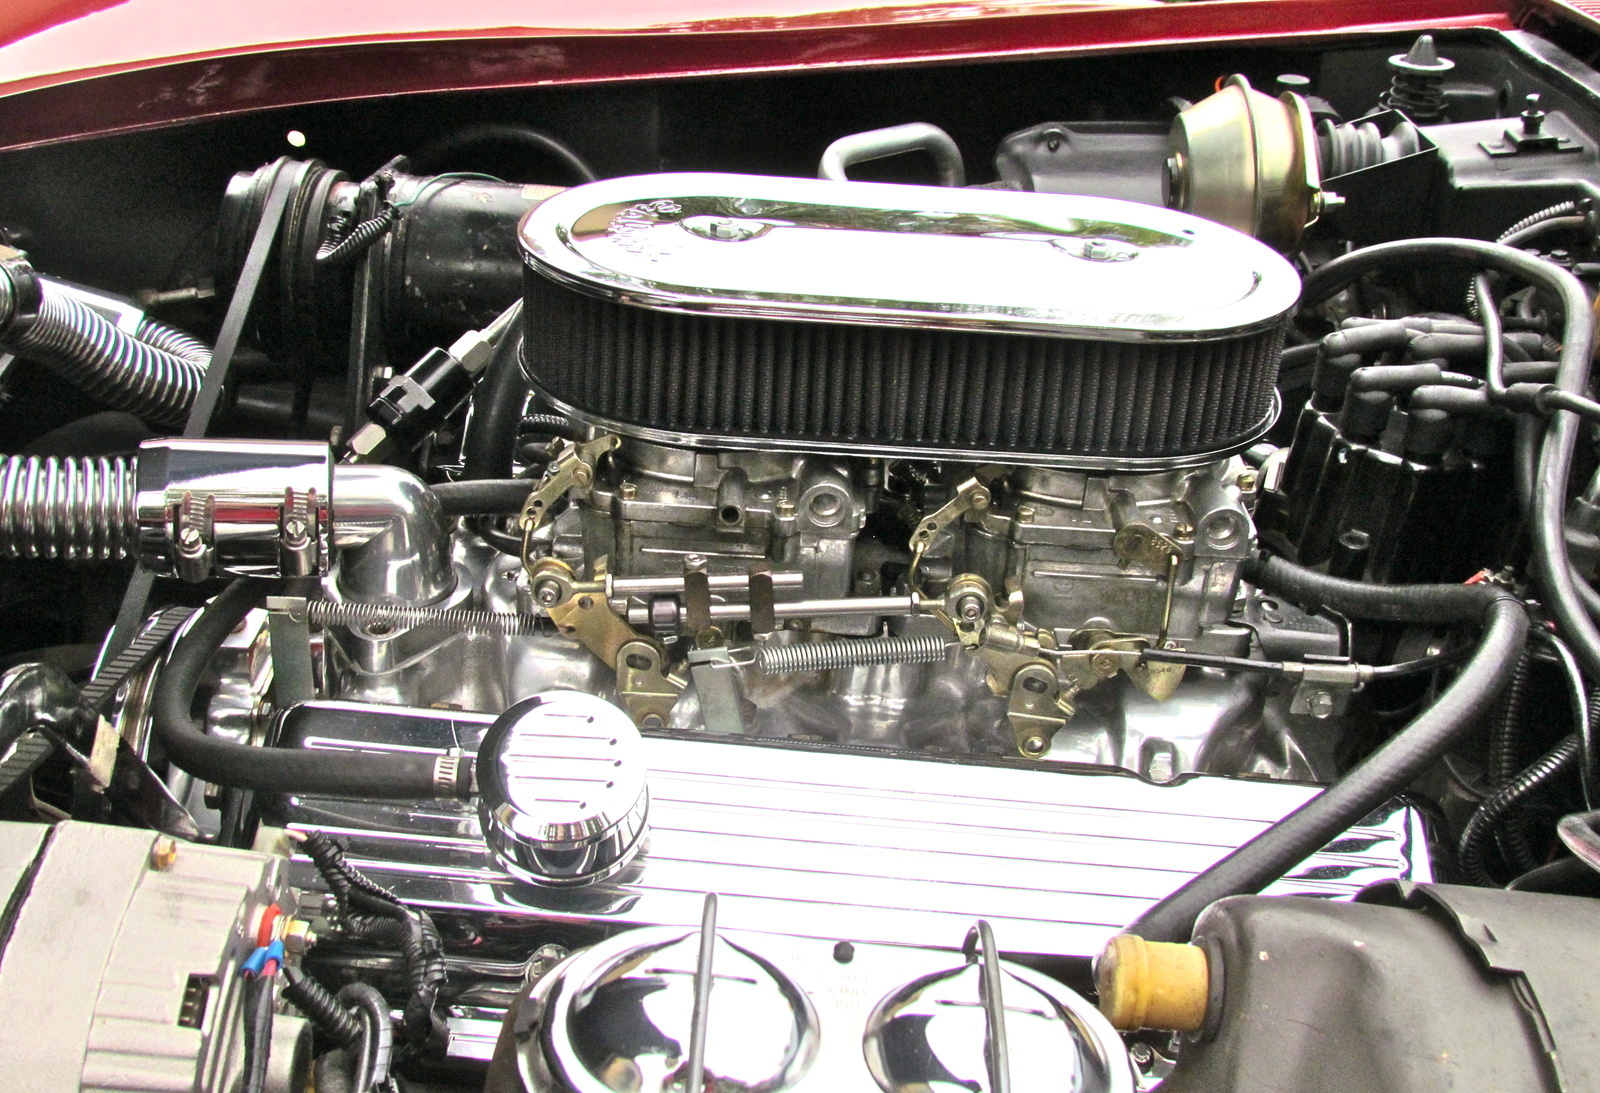 Chevrolet Caprice Questions Classic Auto Transmission To Diagram Together With 1981 1987 Chevy Trucks On 454 Sensor You Can Get The Built So It Is Bullet Proof All Kinds Of Tricks Corvette Now Has Their Automatic In Z 06 Stronger And Faster Than